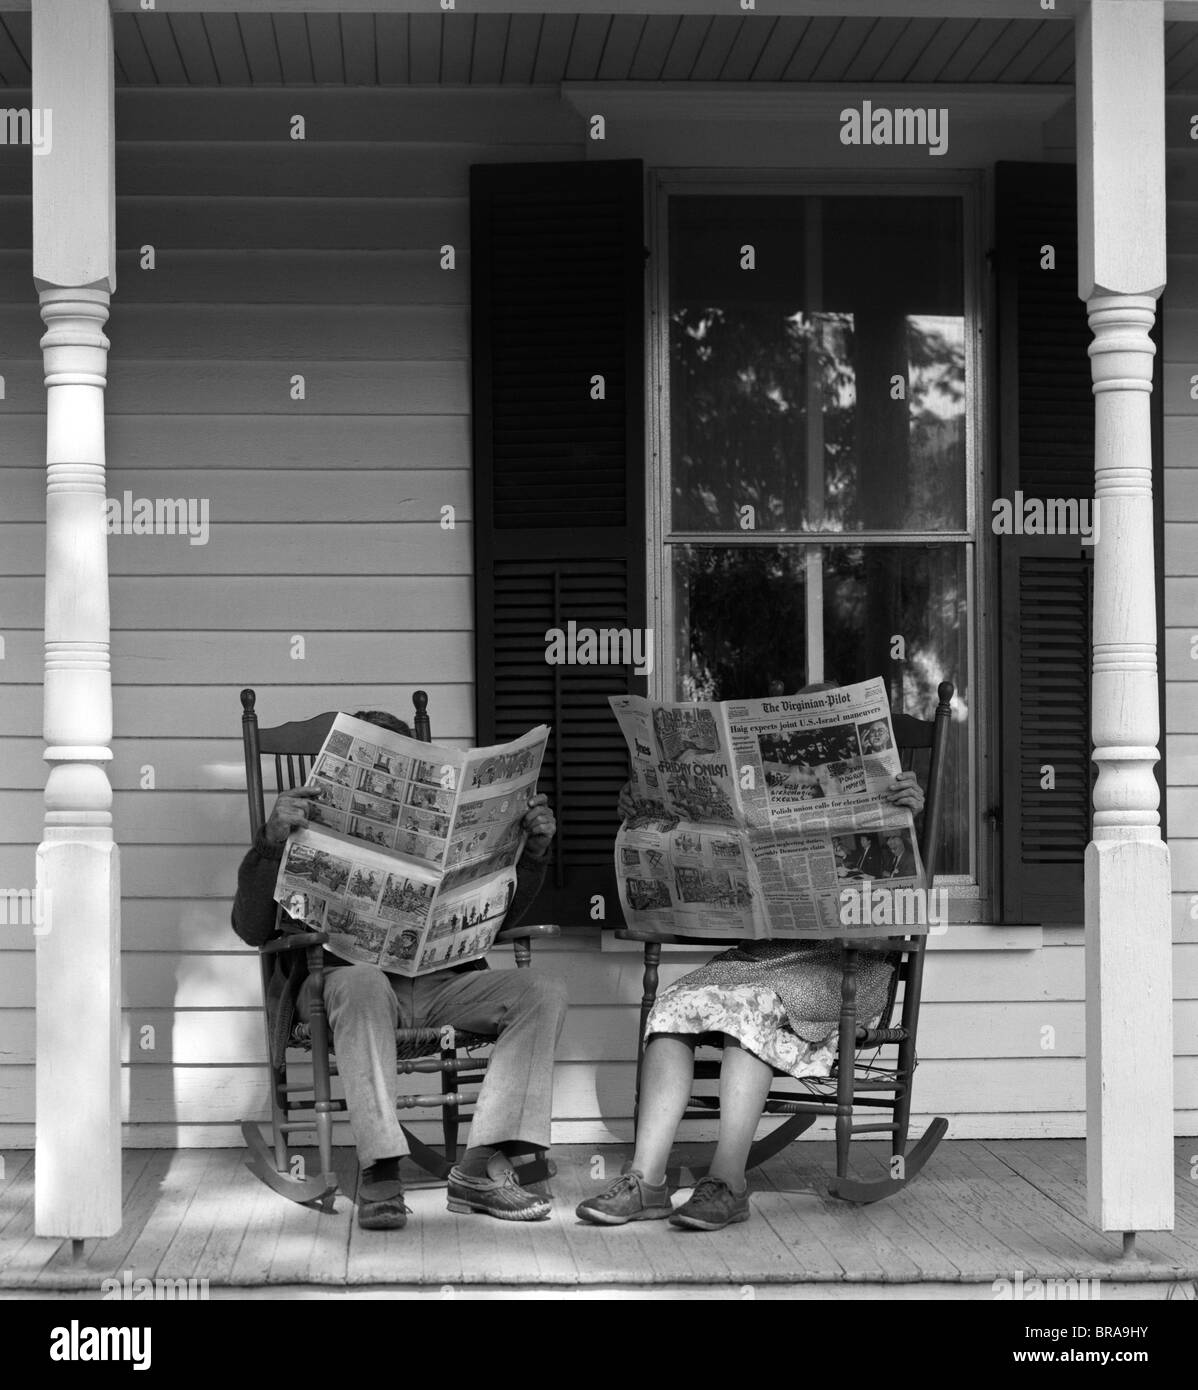 1950s 1960s COUPLE MAN WOMAN SITTING ON PORCH IN ROCKING CHAIRS HOLDING NEWSPAPERS UP HIDING THEIR FACES Stock Photo